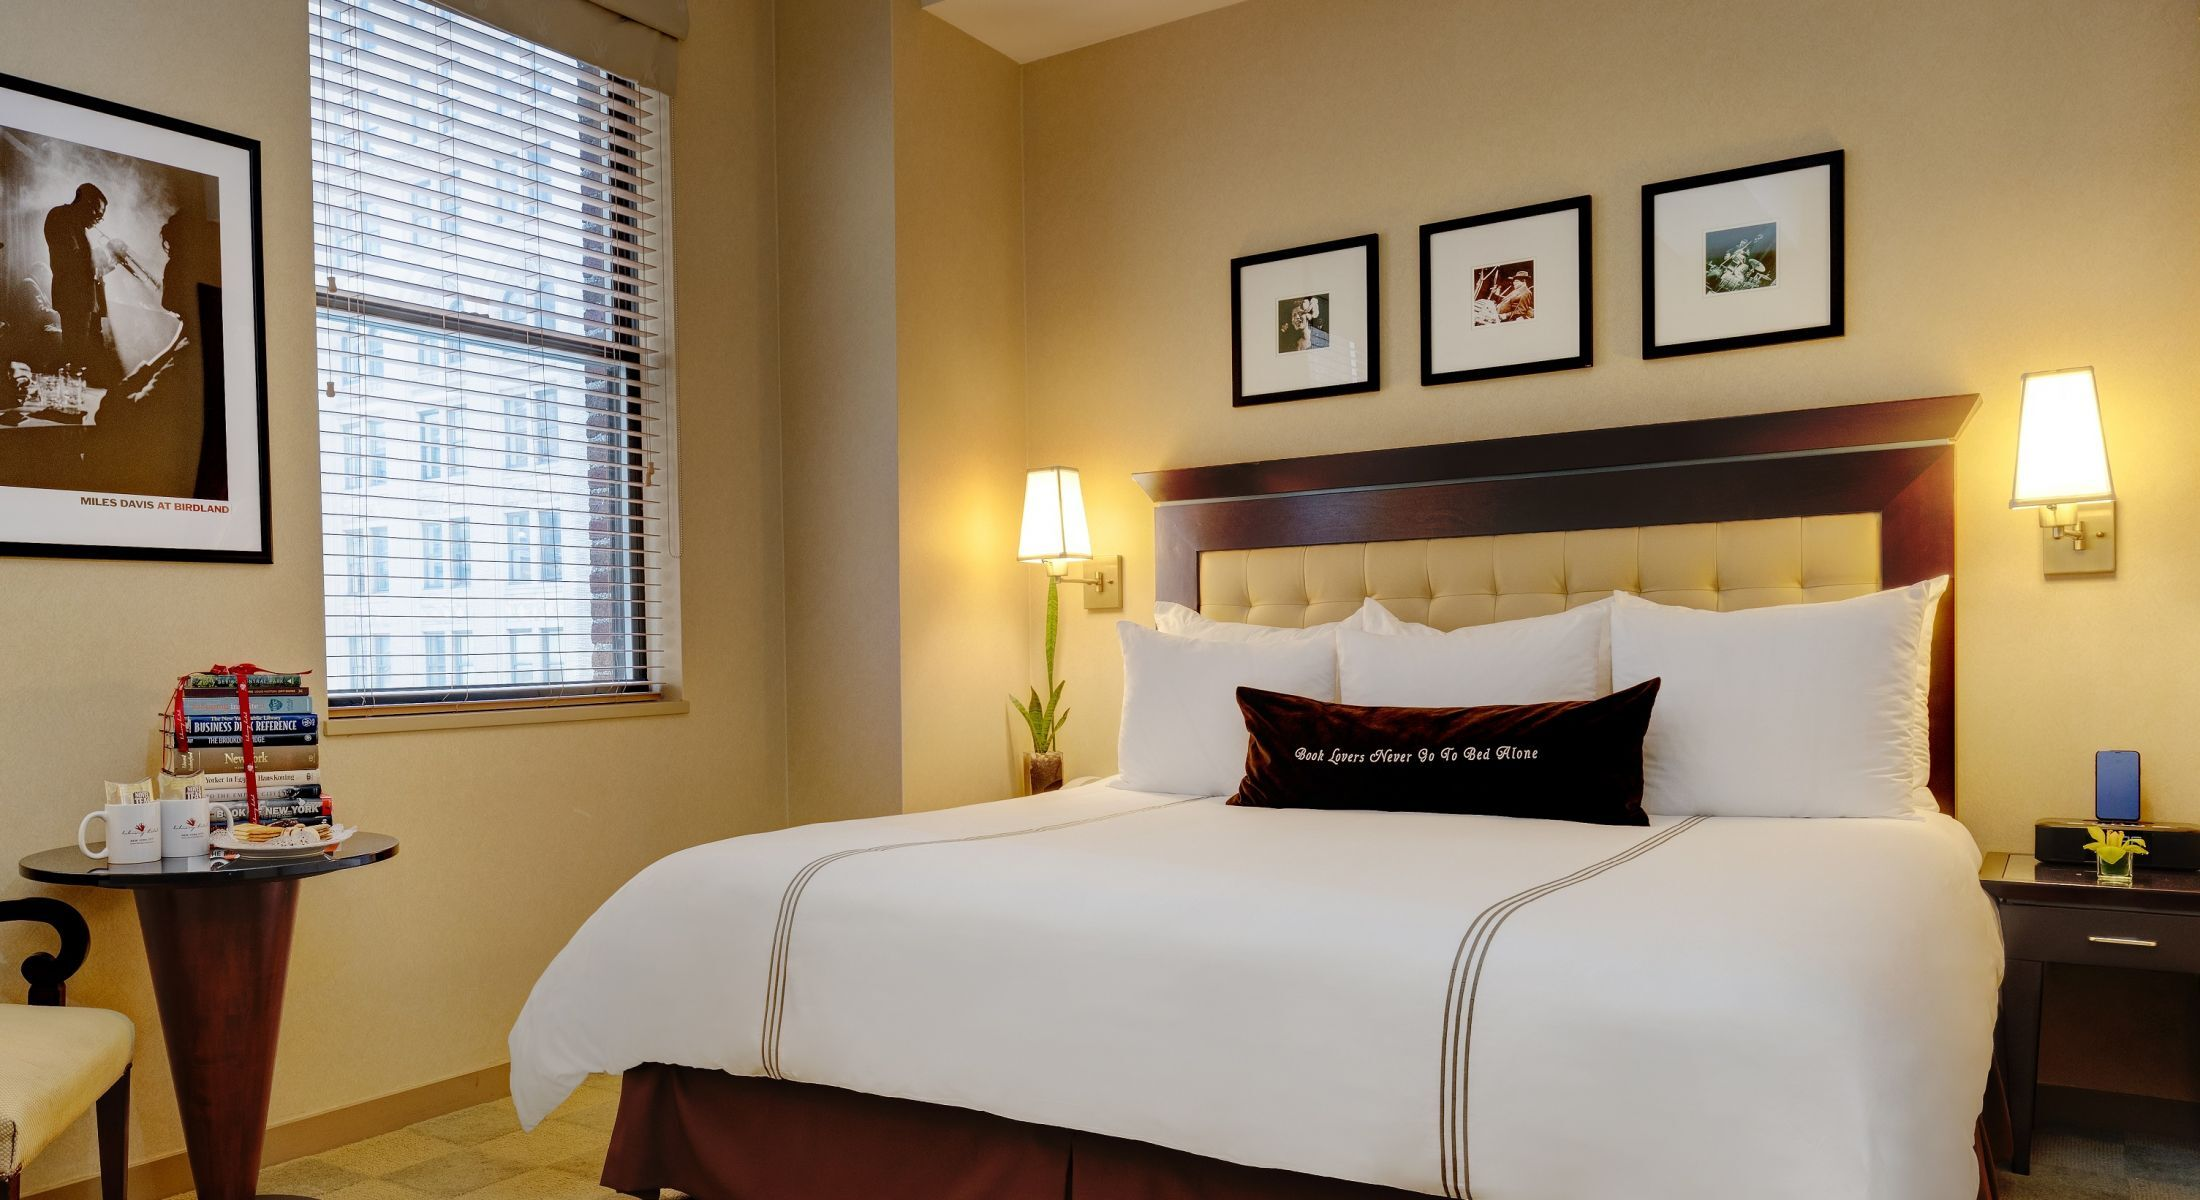 King bedded room with 2 nightstands and table with special added amenities